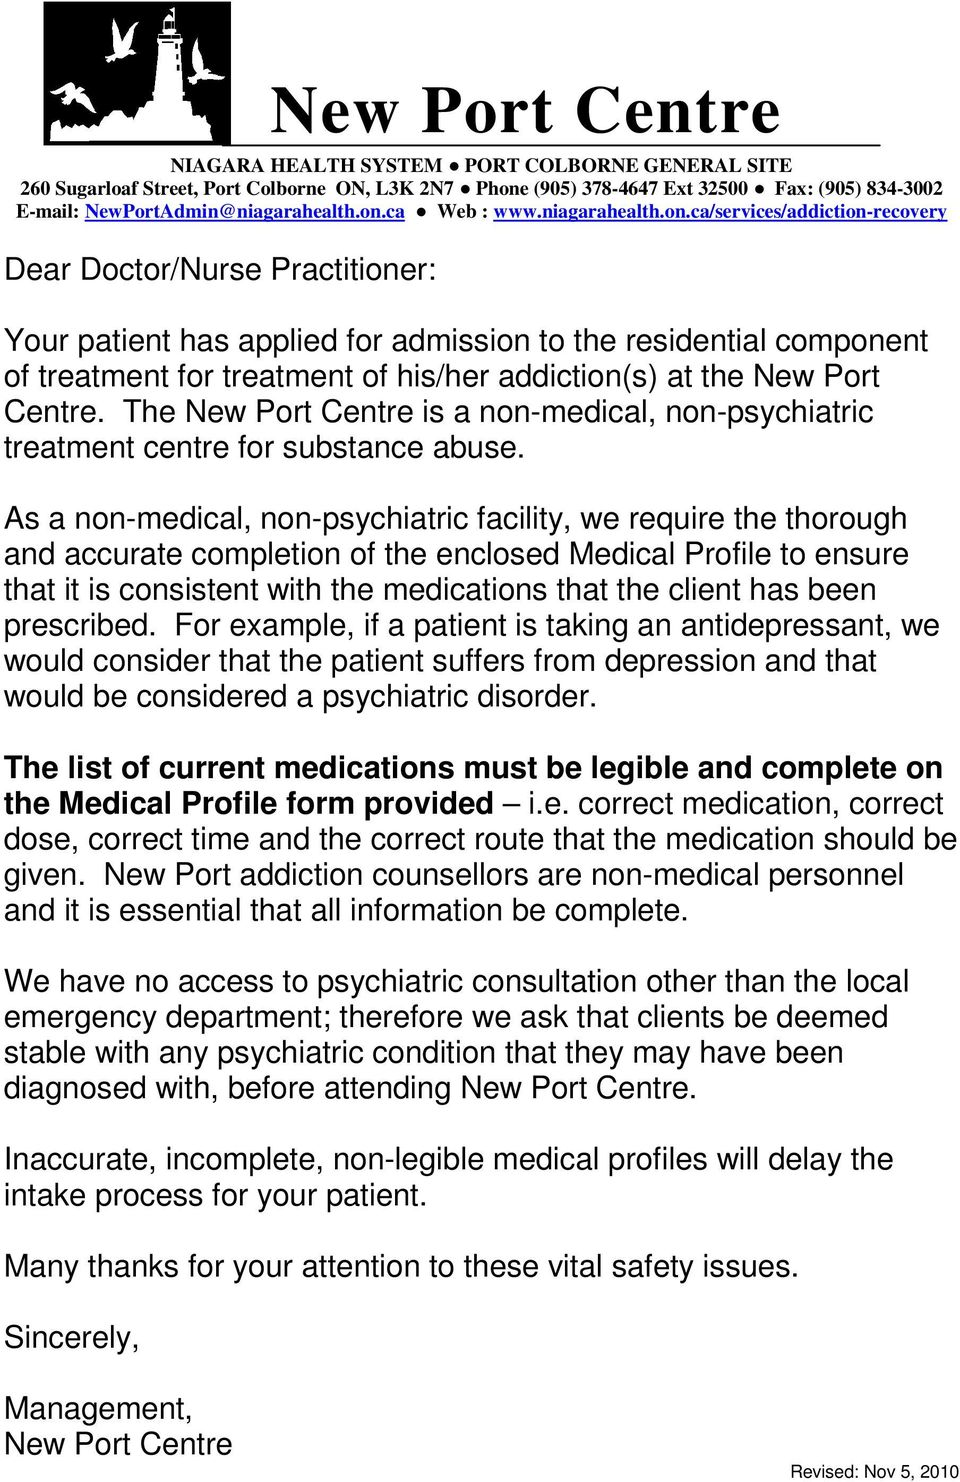 his/her addiction(s) at the New Port Centre. The New Port Centre is a non-medical, non-psychiatric treatment centre for substance abuse.